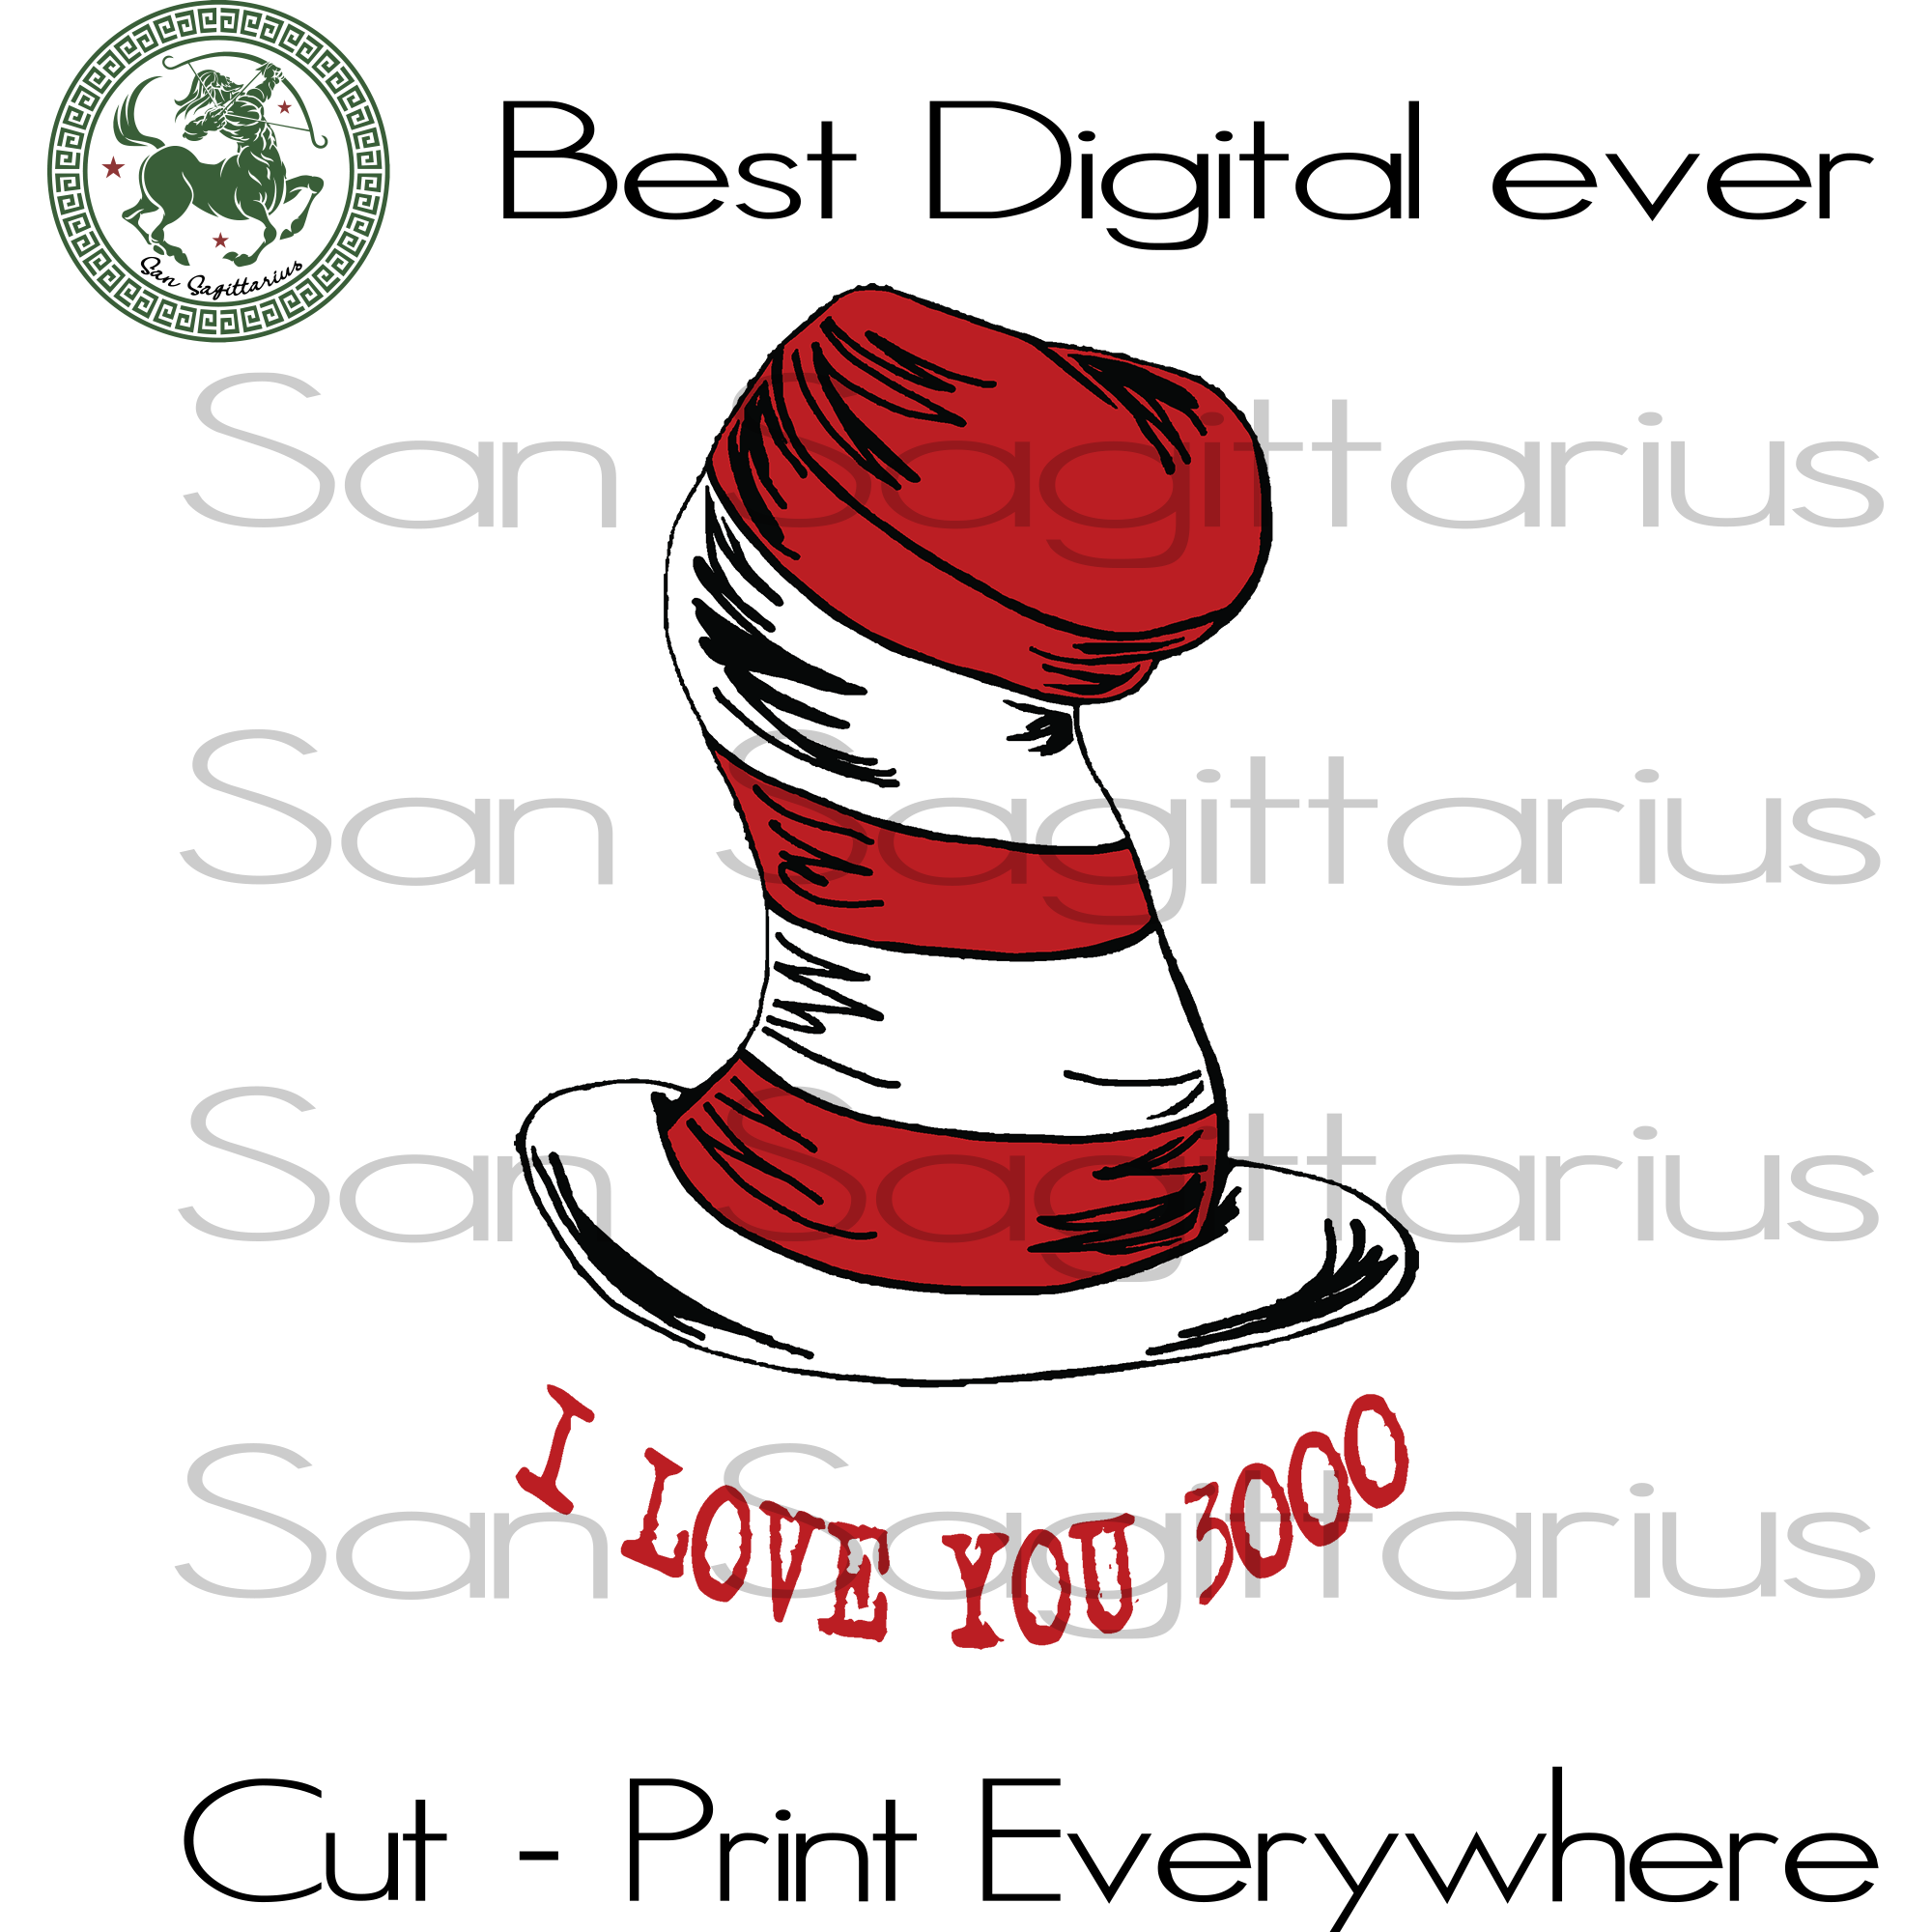 I Love You 3000, Dr Seuss Hat Svg, Dr Seuss Gift, Dr Seuss Birthday, Dr Seuss Print, Dr Seuss Poster, Thing 1 Thing 2 Svg Files For Cricut Silhouette Instant Download | San Sagittarius